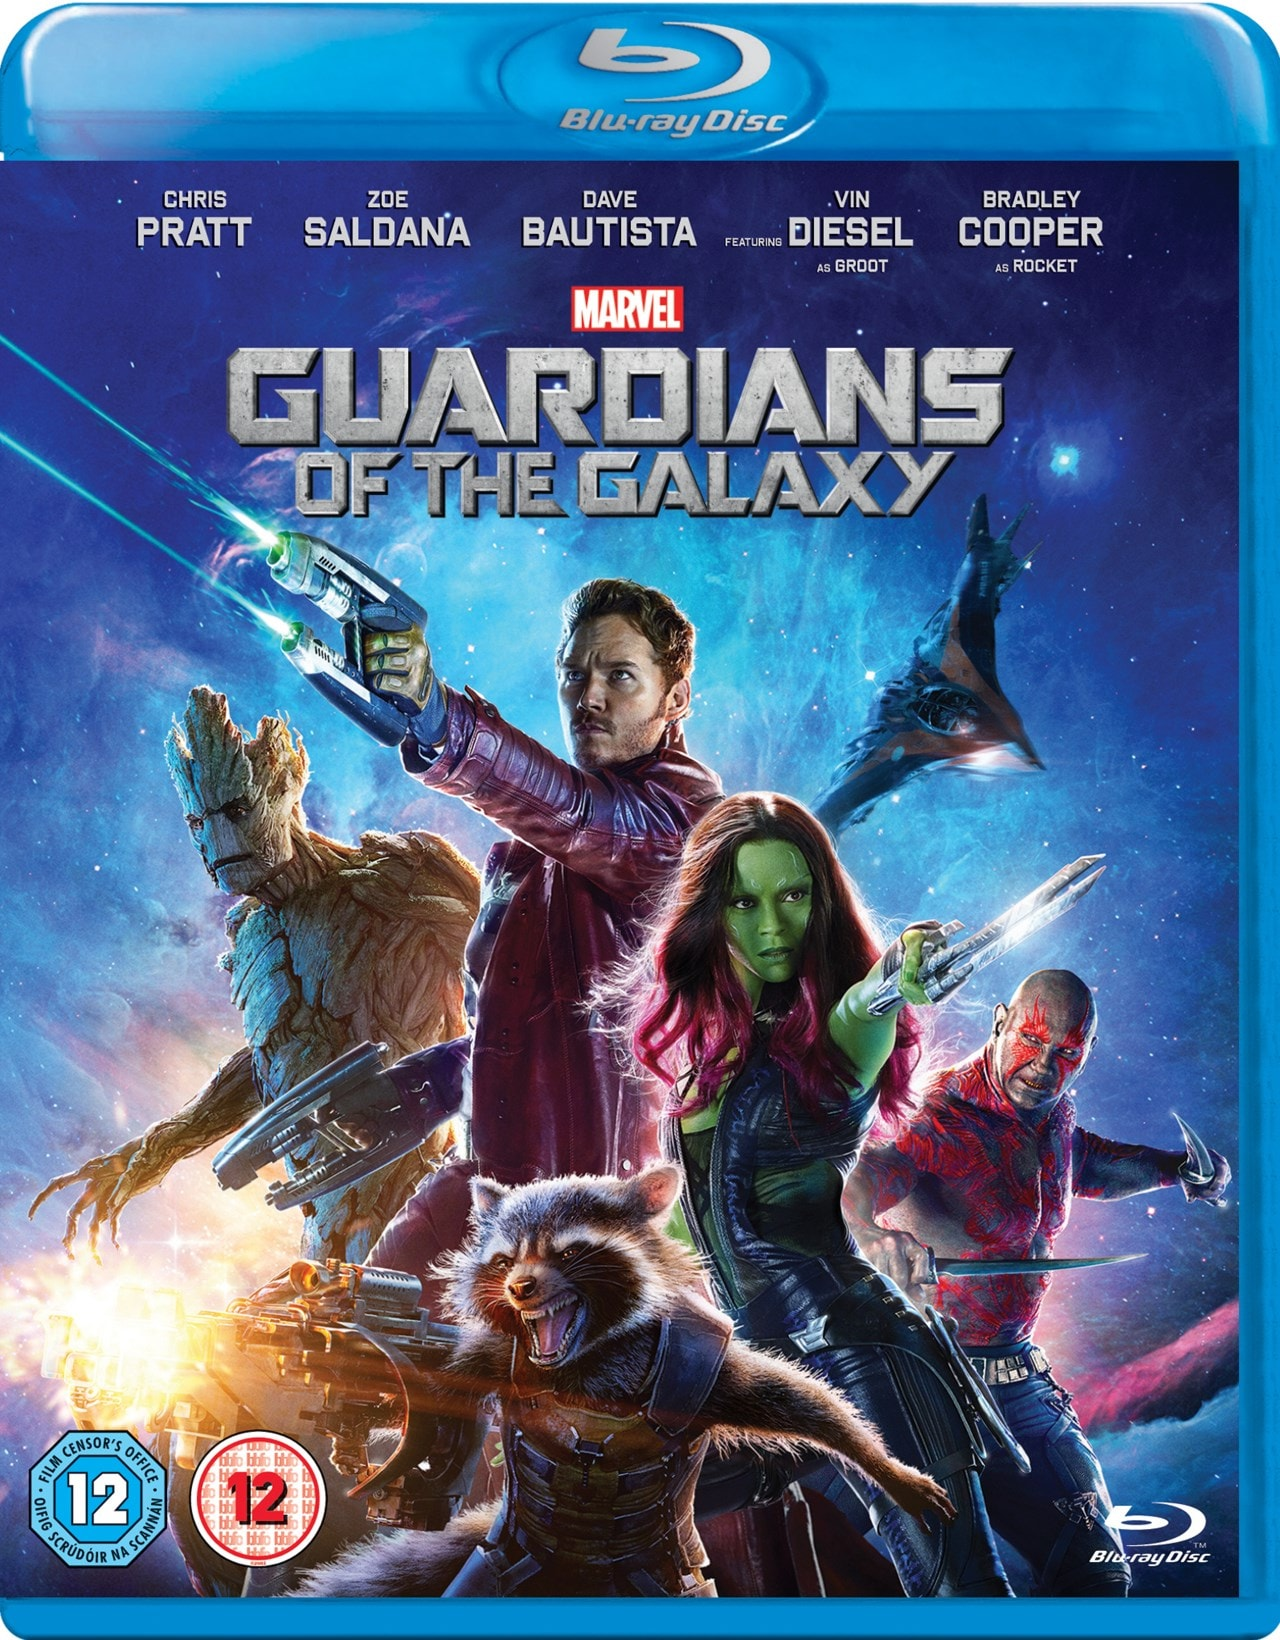 Guardians of the Galaxy - 3